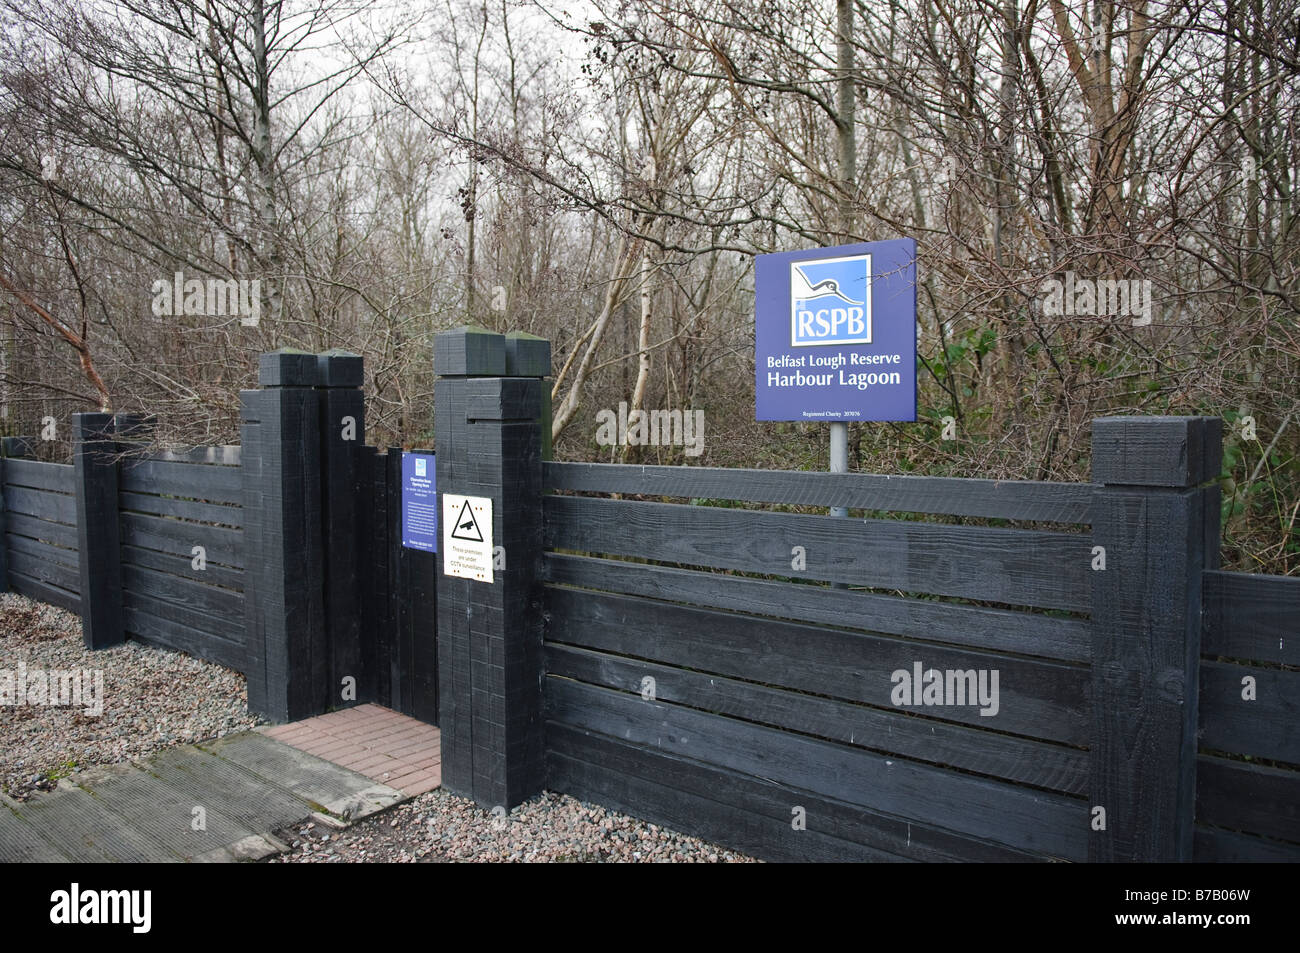 Entrance to bird hide at the RSPB Reserve, Belfast Lagoon at Belfast Lough. - Stock Image